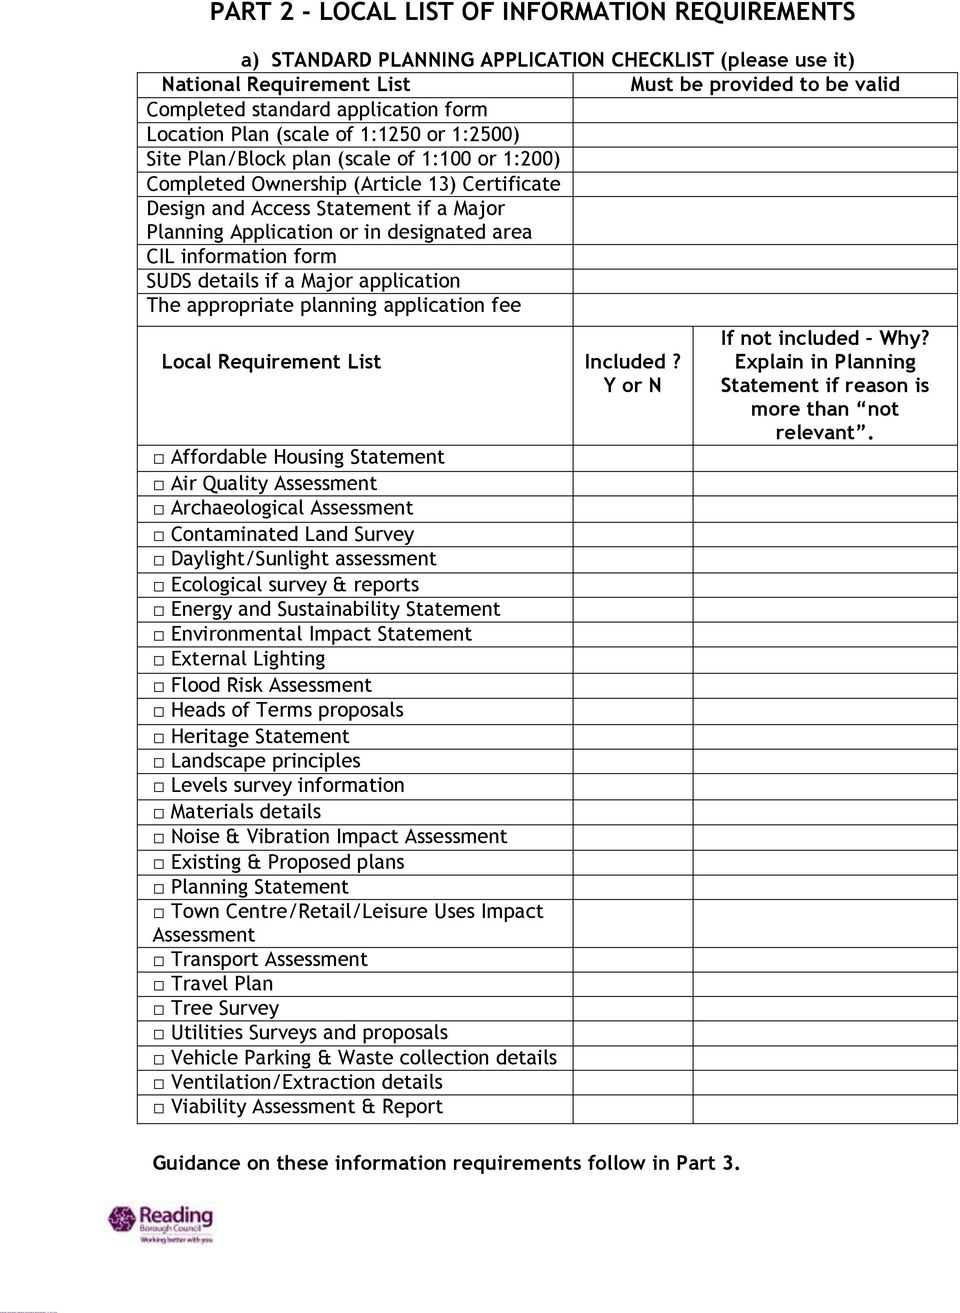 designated area CIL information form SUDS details if a Major application The appropriate planning application fee Local Requirement List Included?